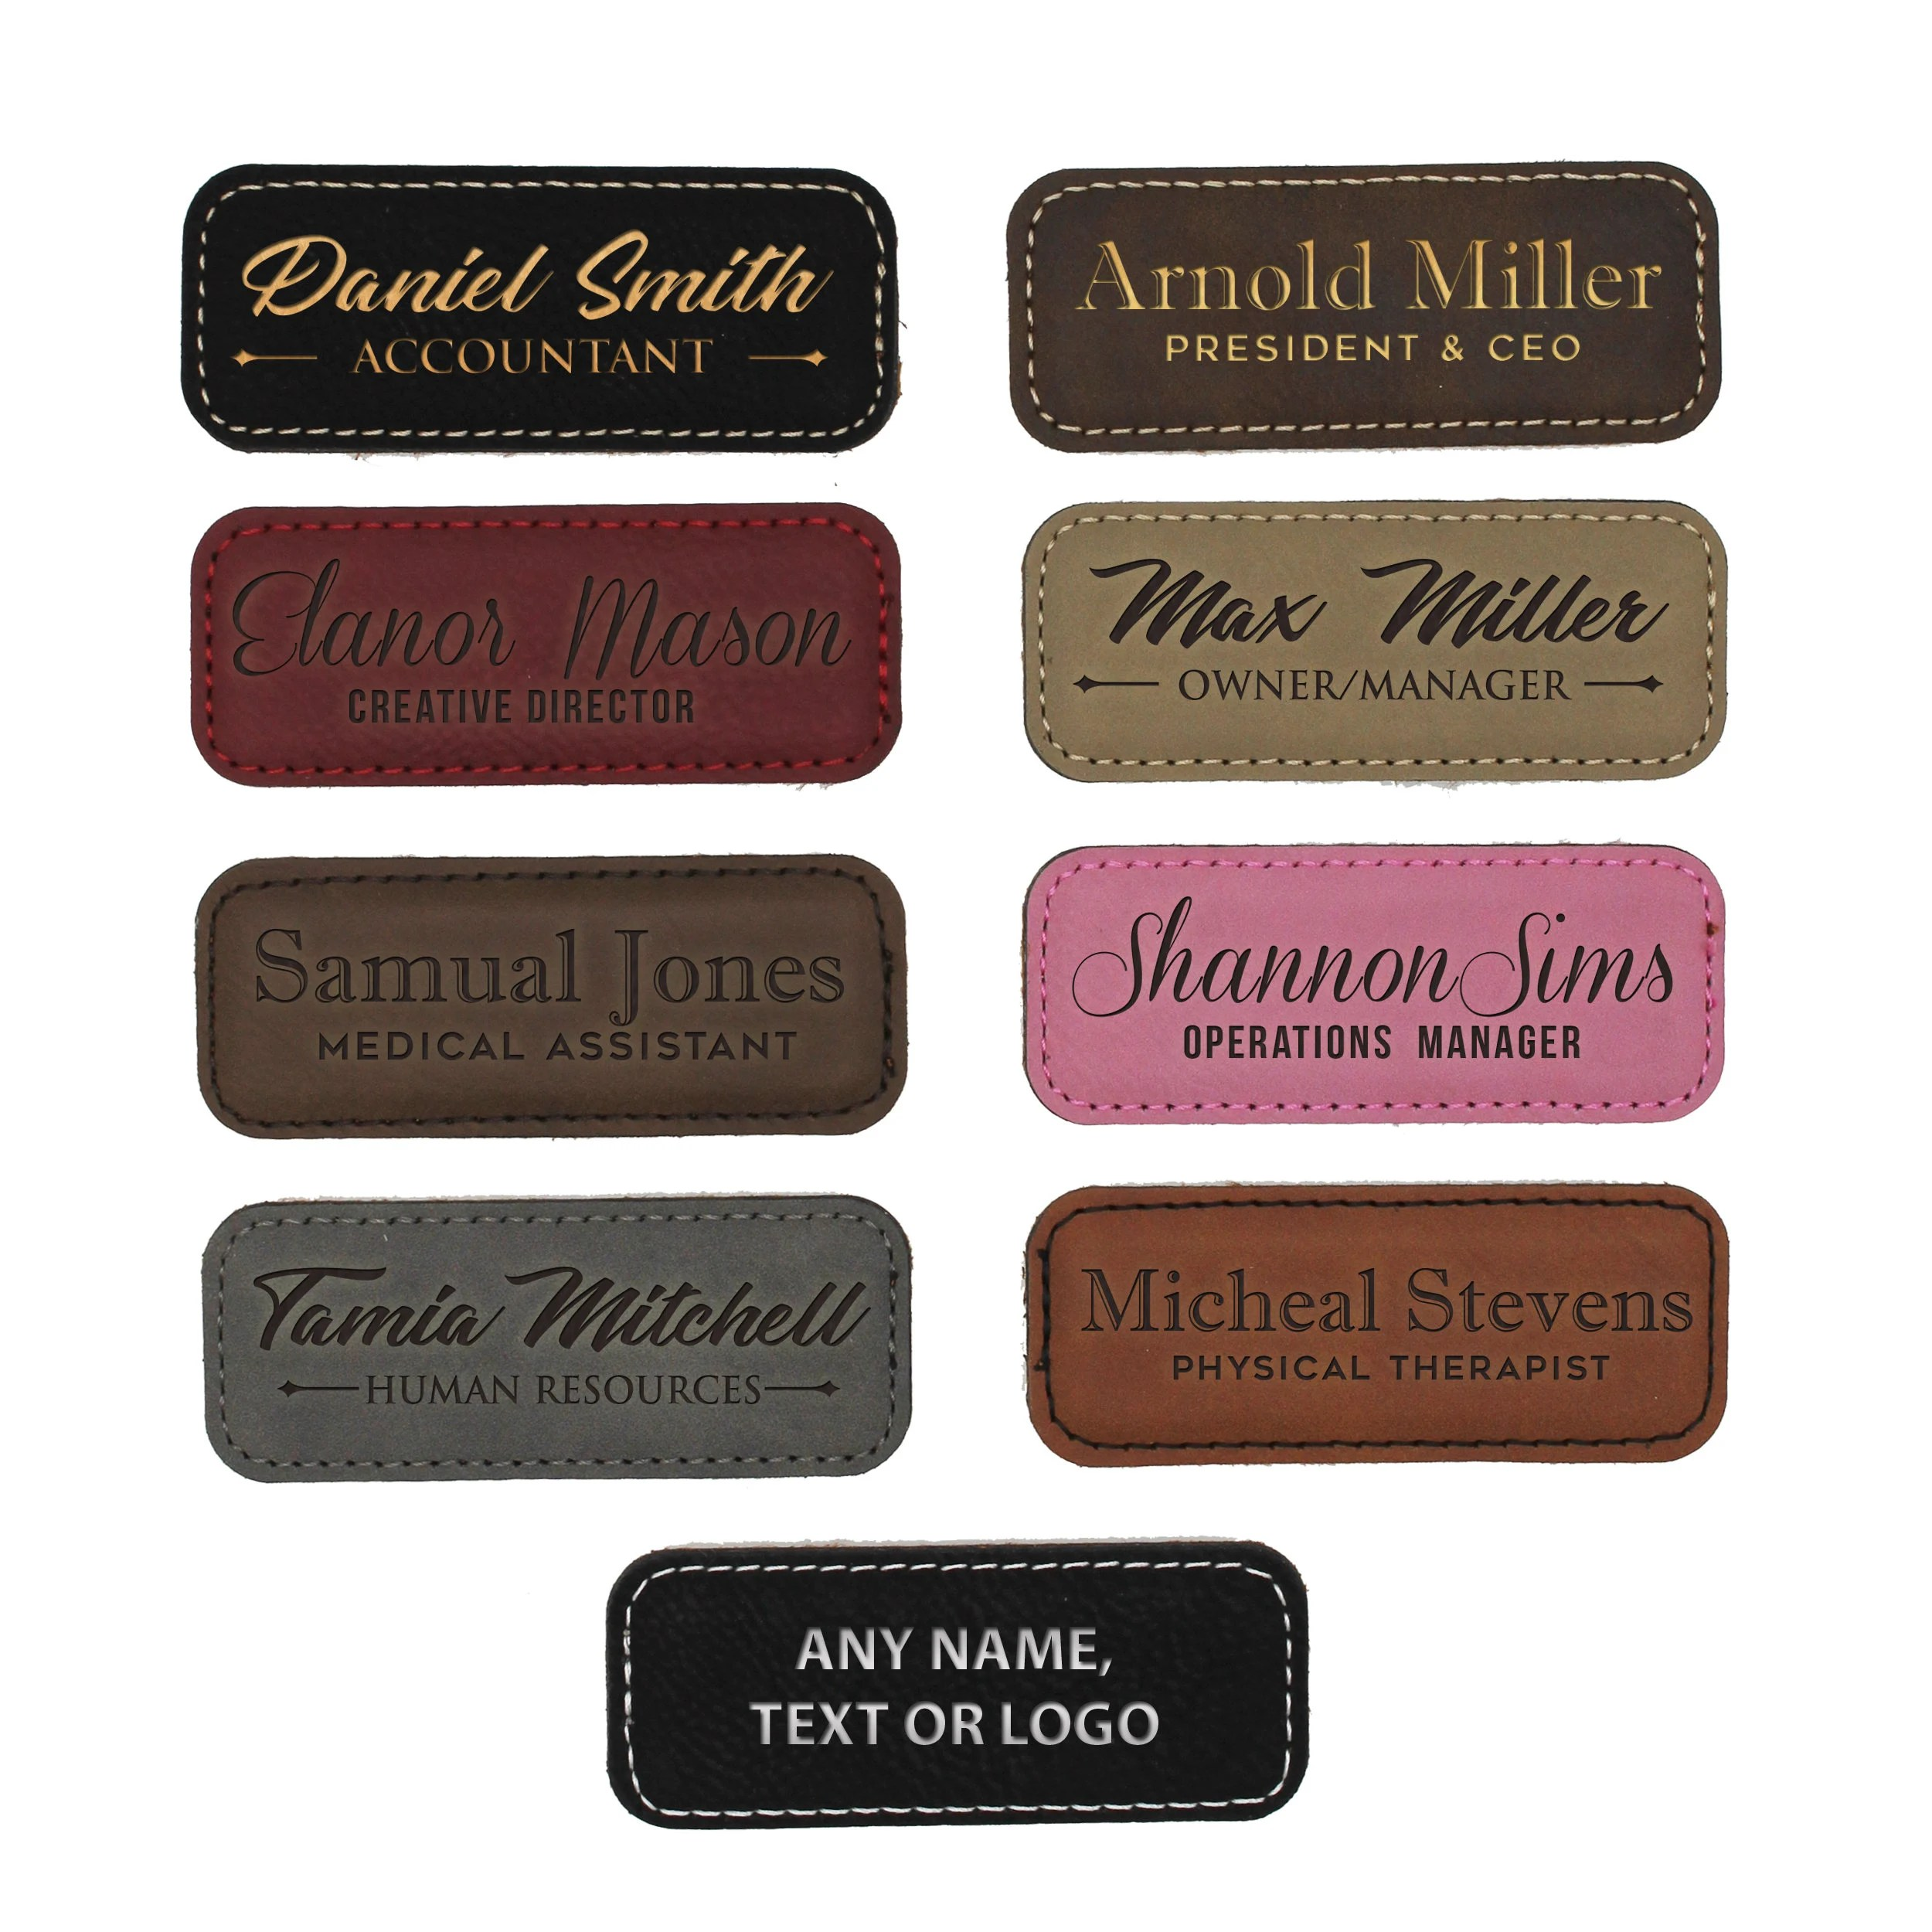 Leather Name Tag Name Tags Magnetic Oval Name Badge Etsy